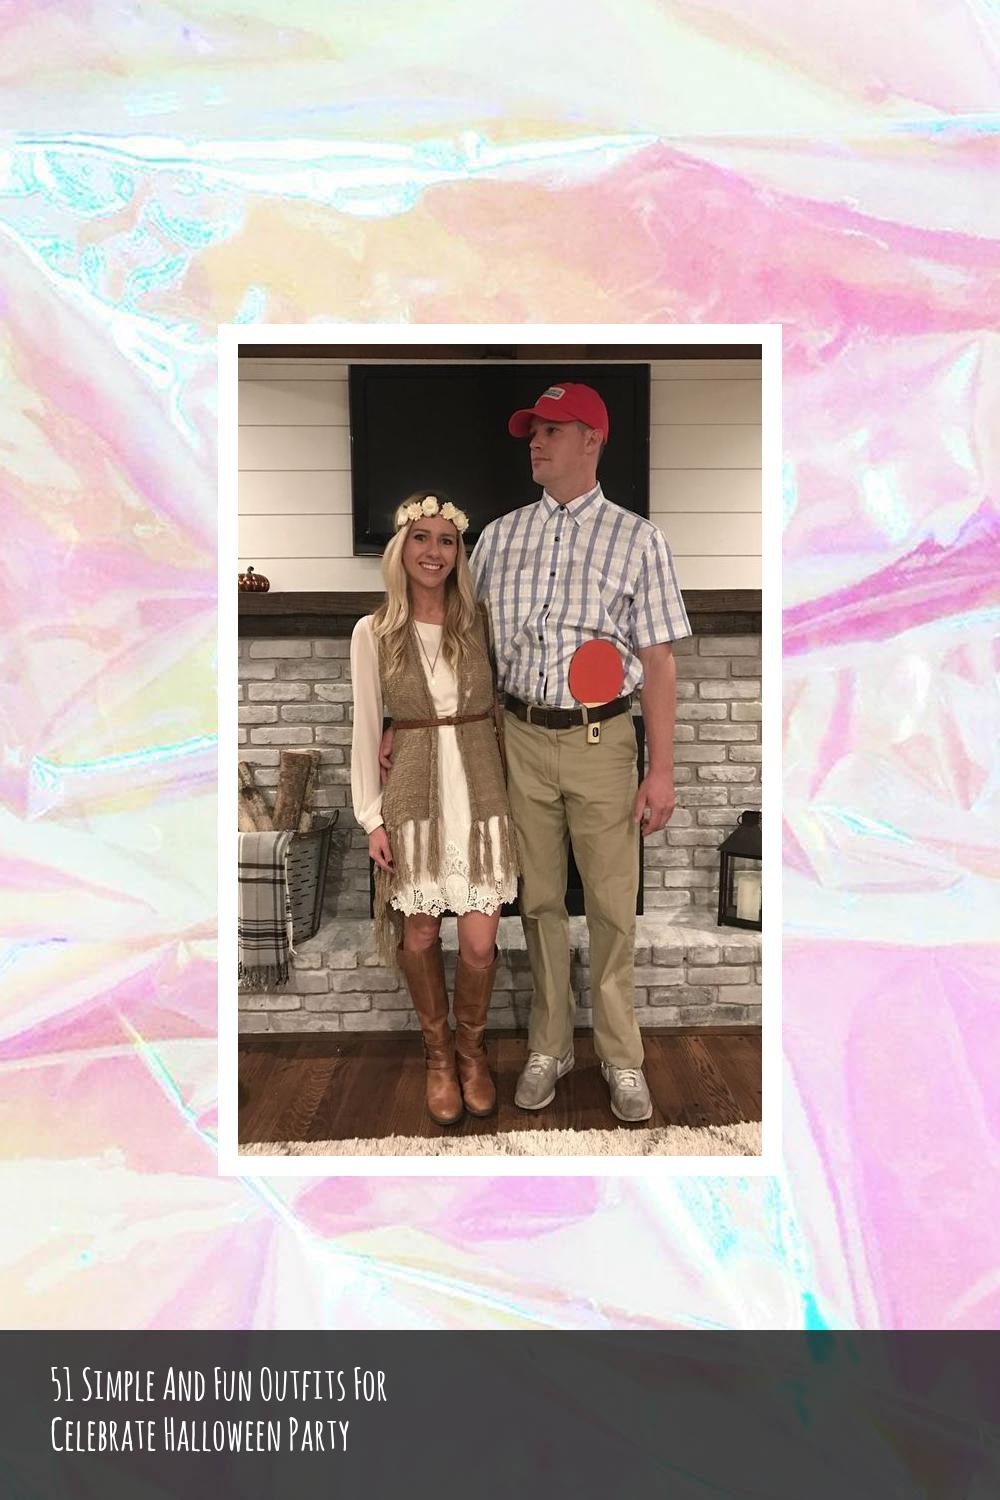 51 Simple And Fun Outfits For Celebrate Halloween Party 17